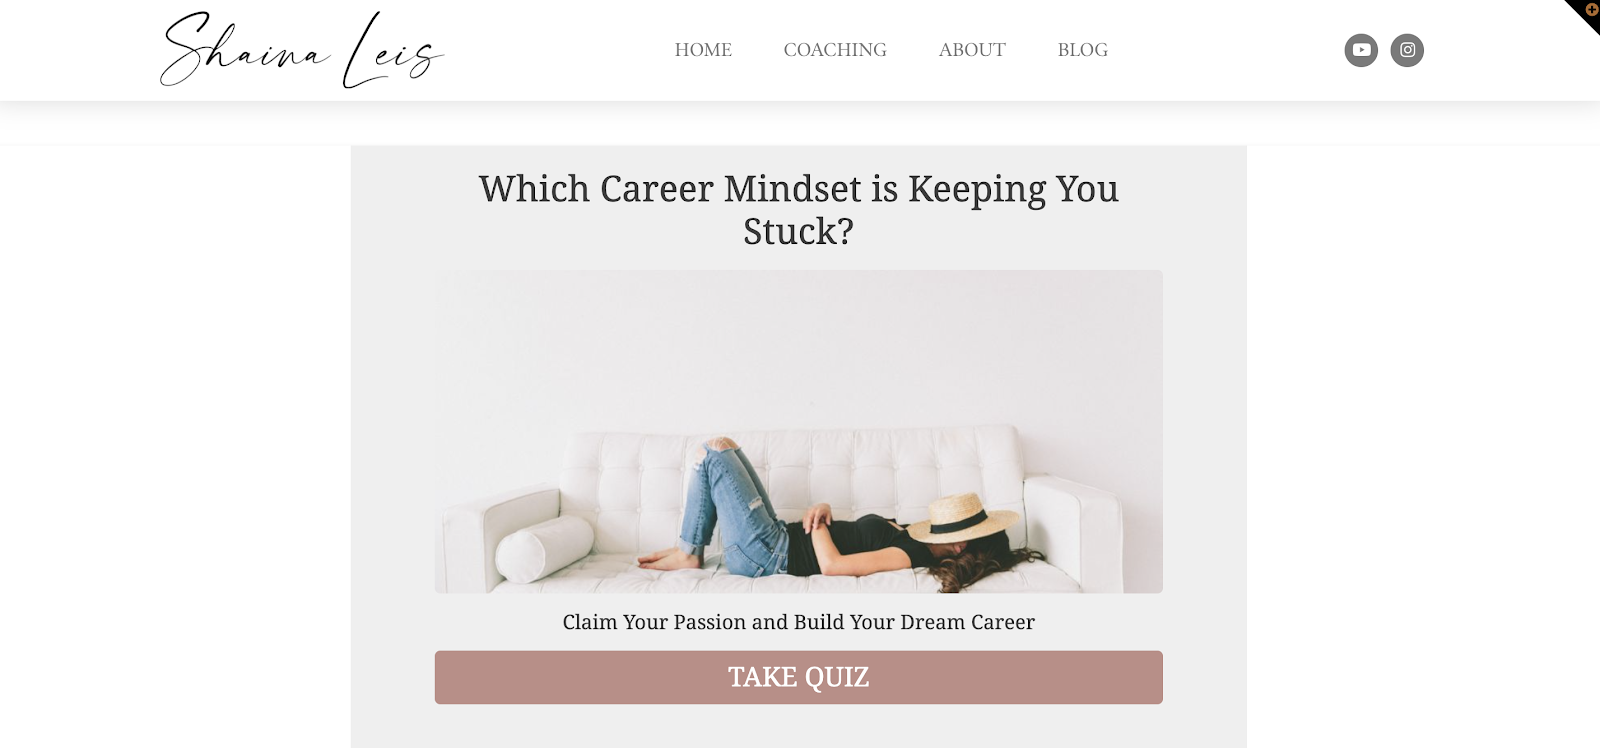 quiz landing page with career mindset quiz embedded